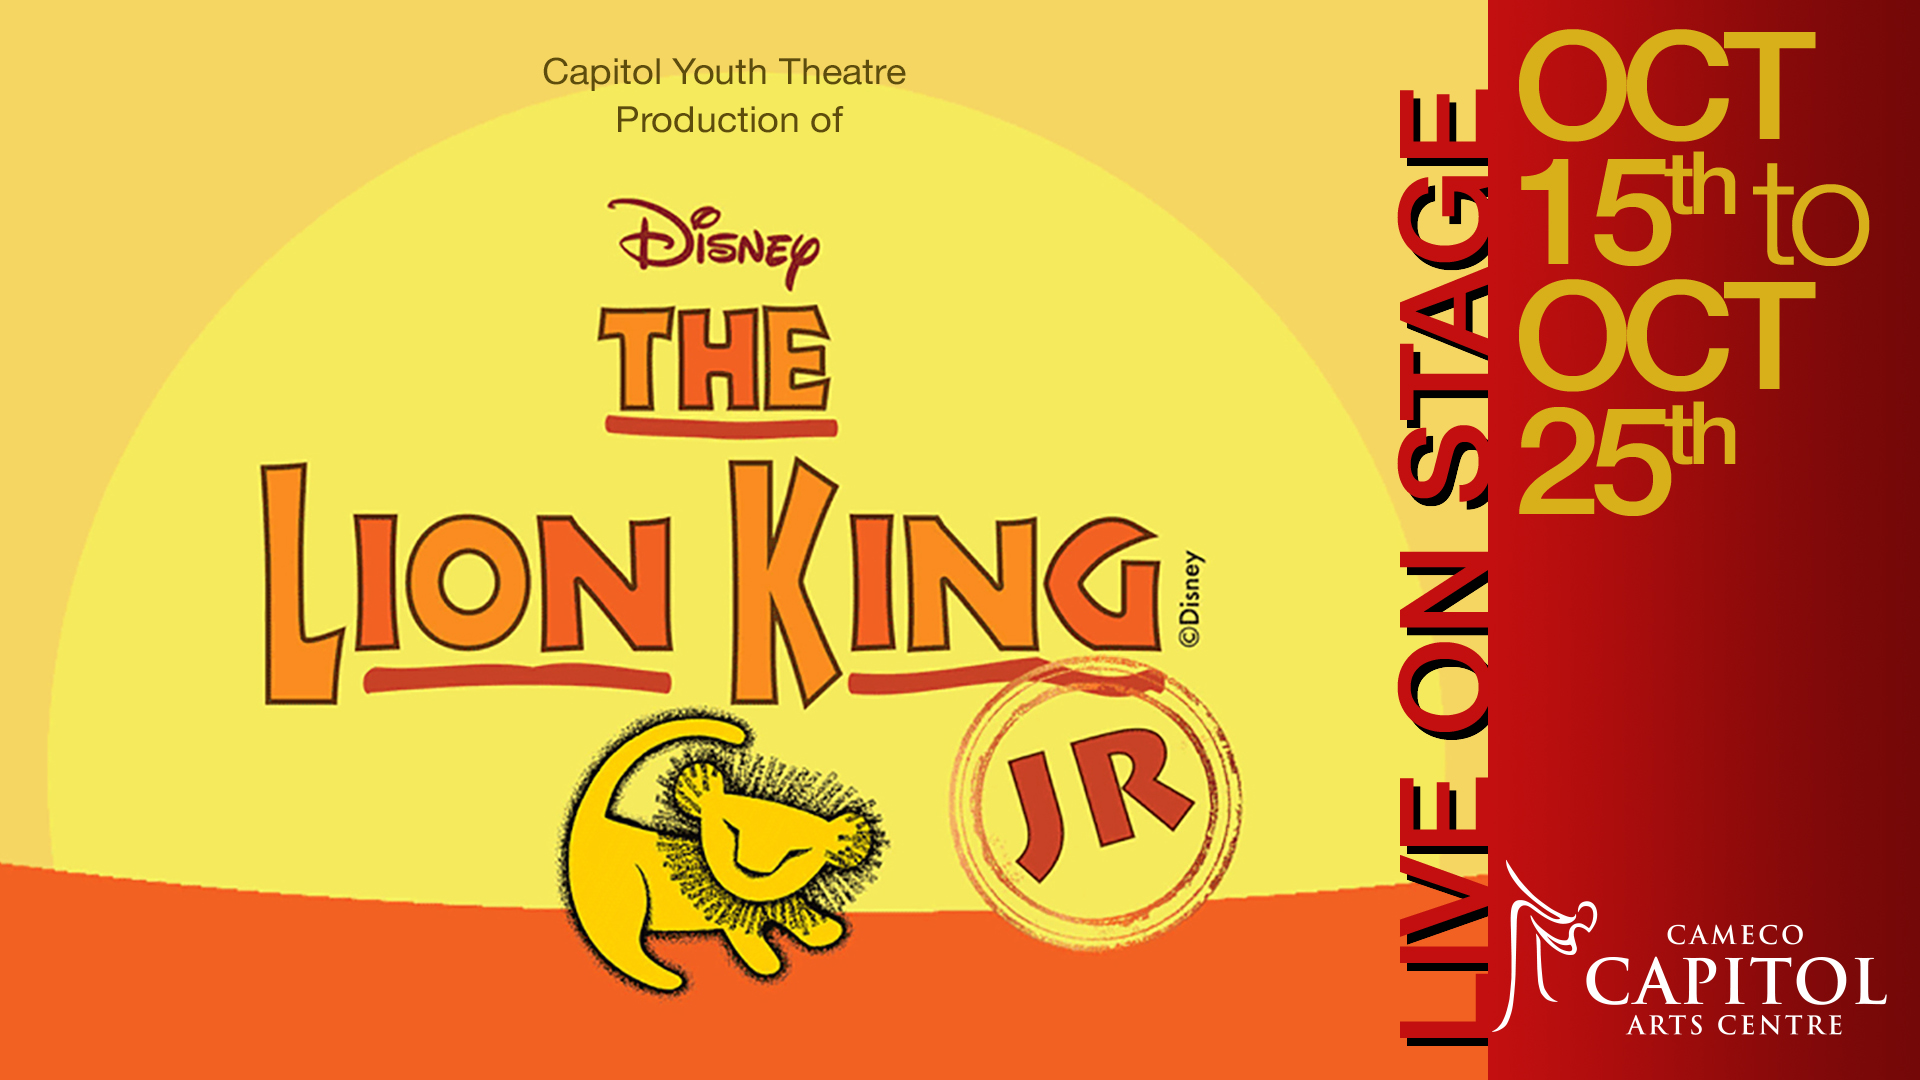 Lion King at the Capitol Theatre